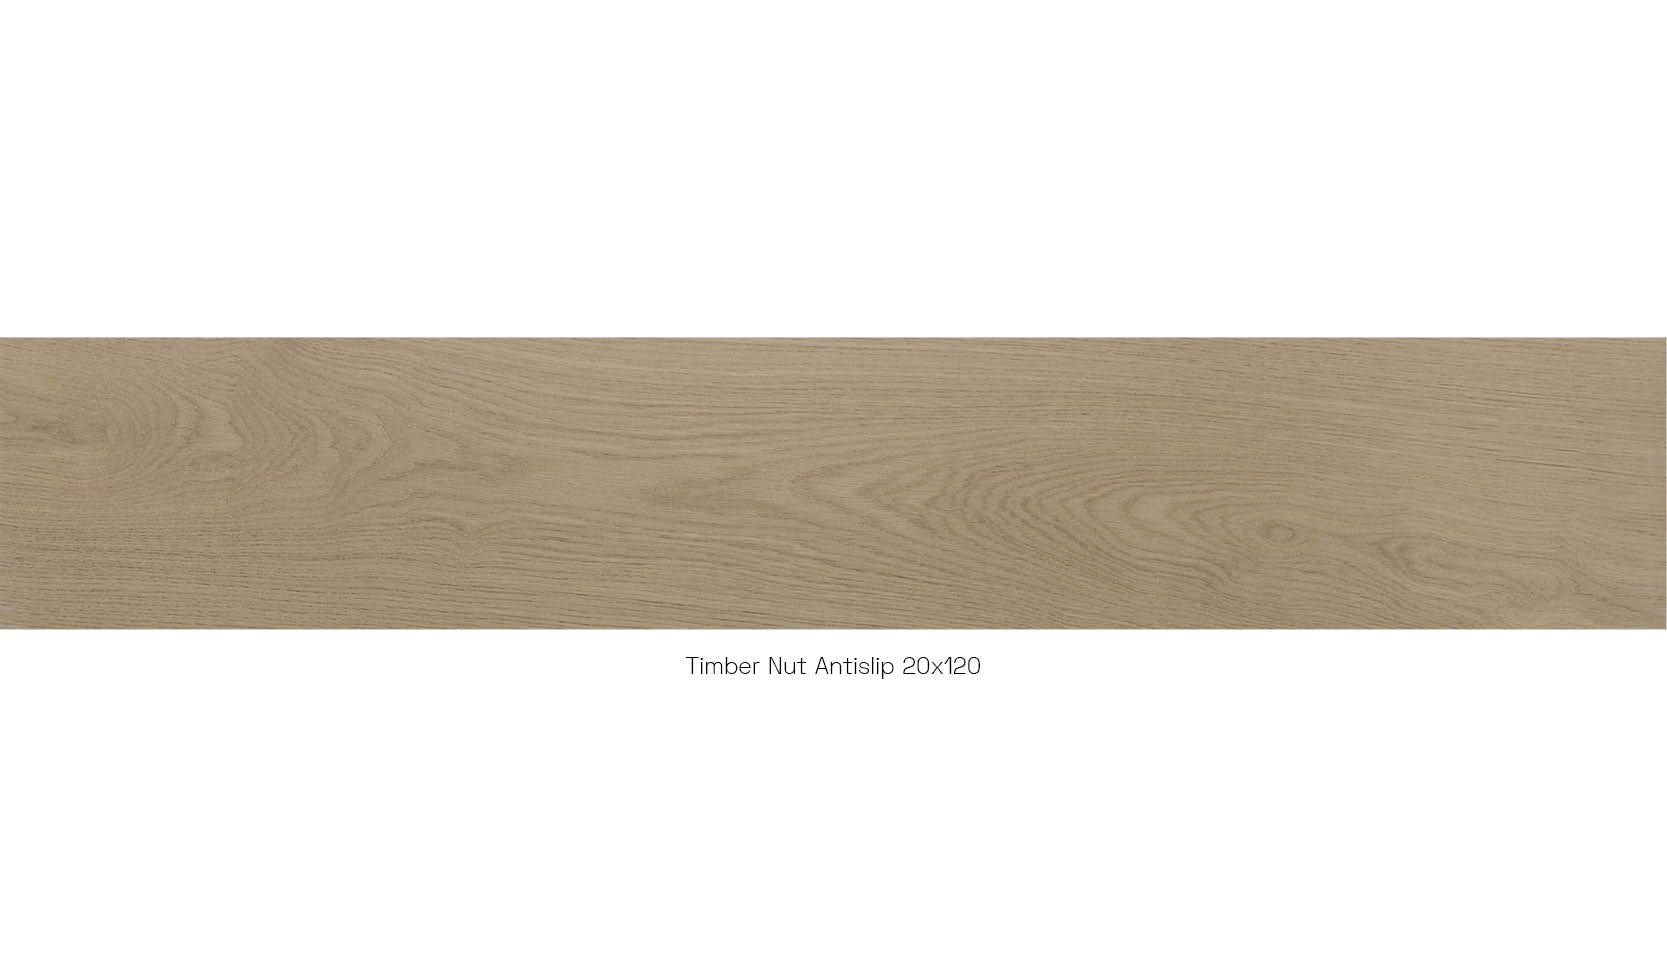 Timber nut antislip 20 x 120